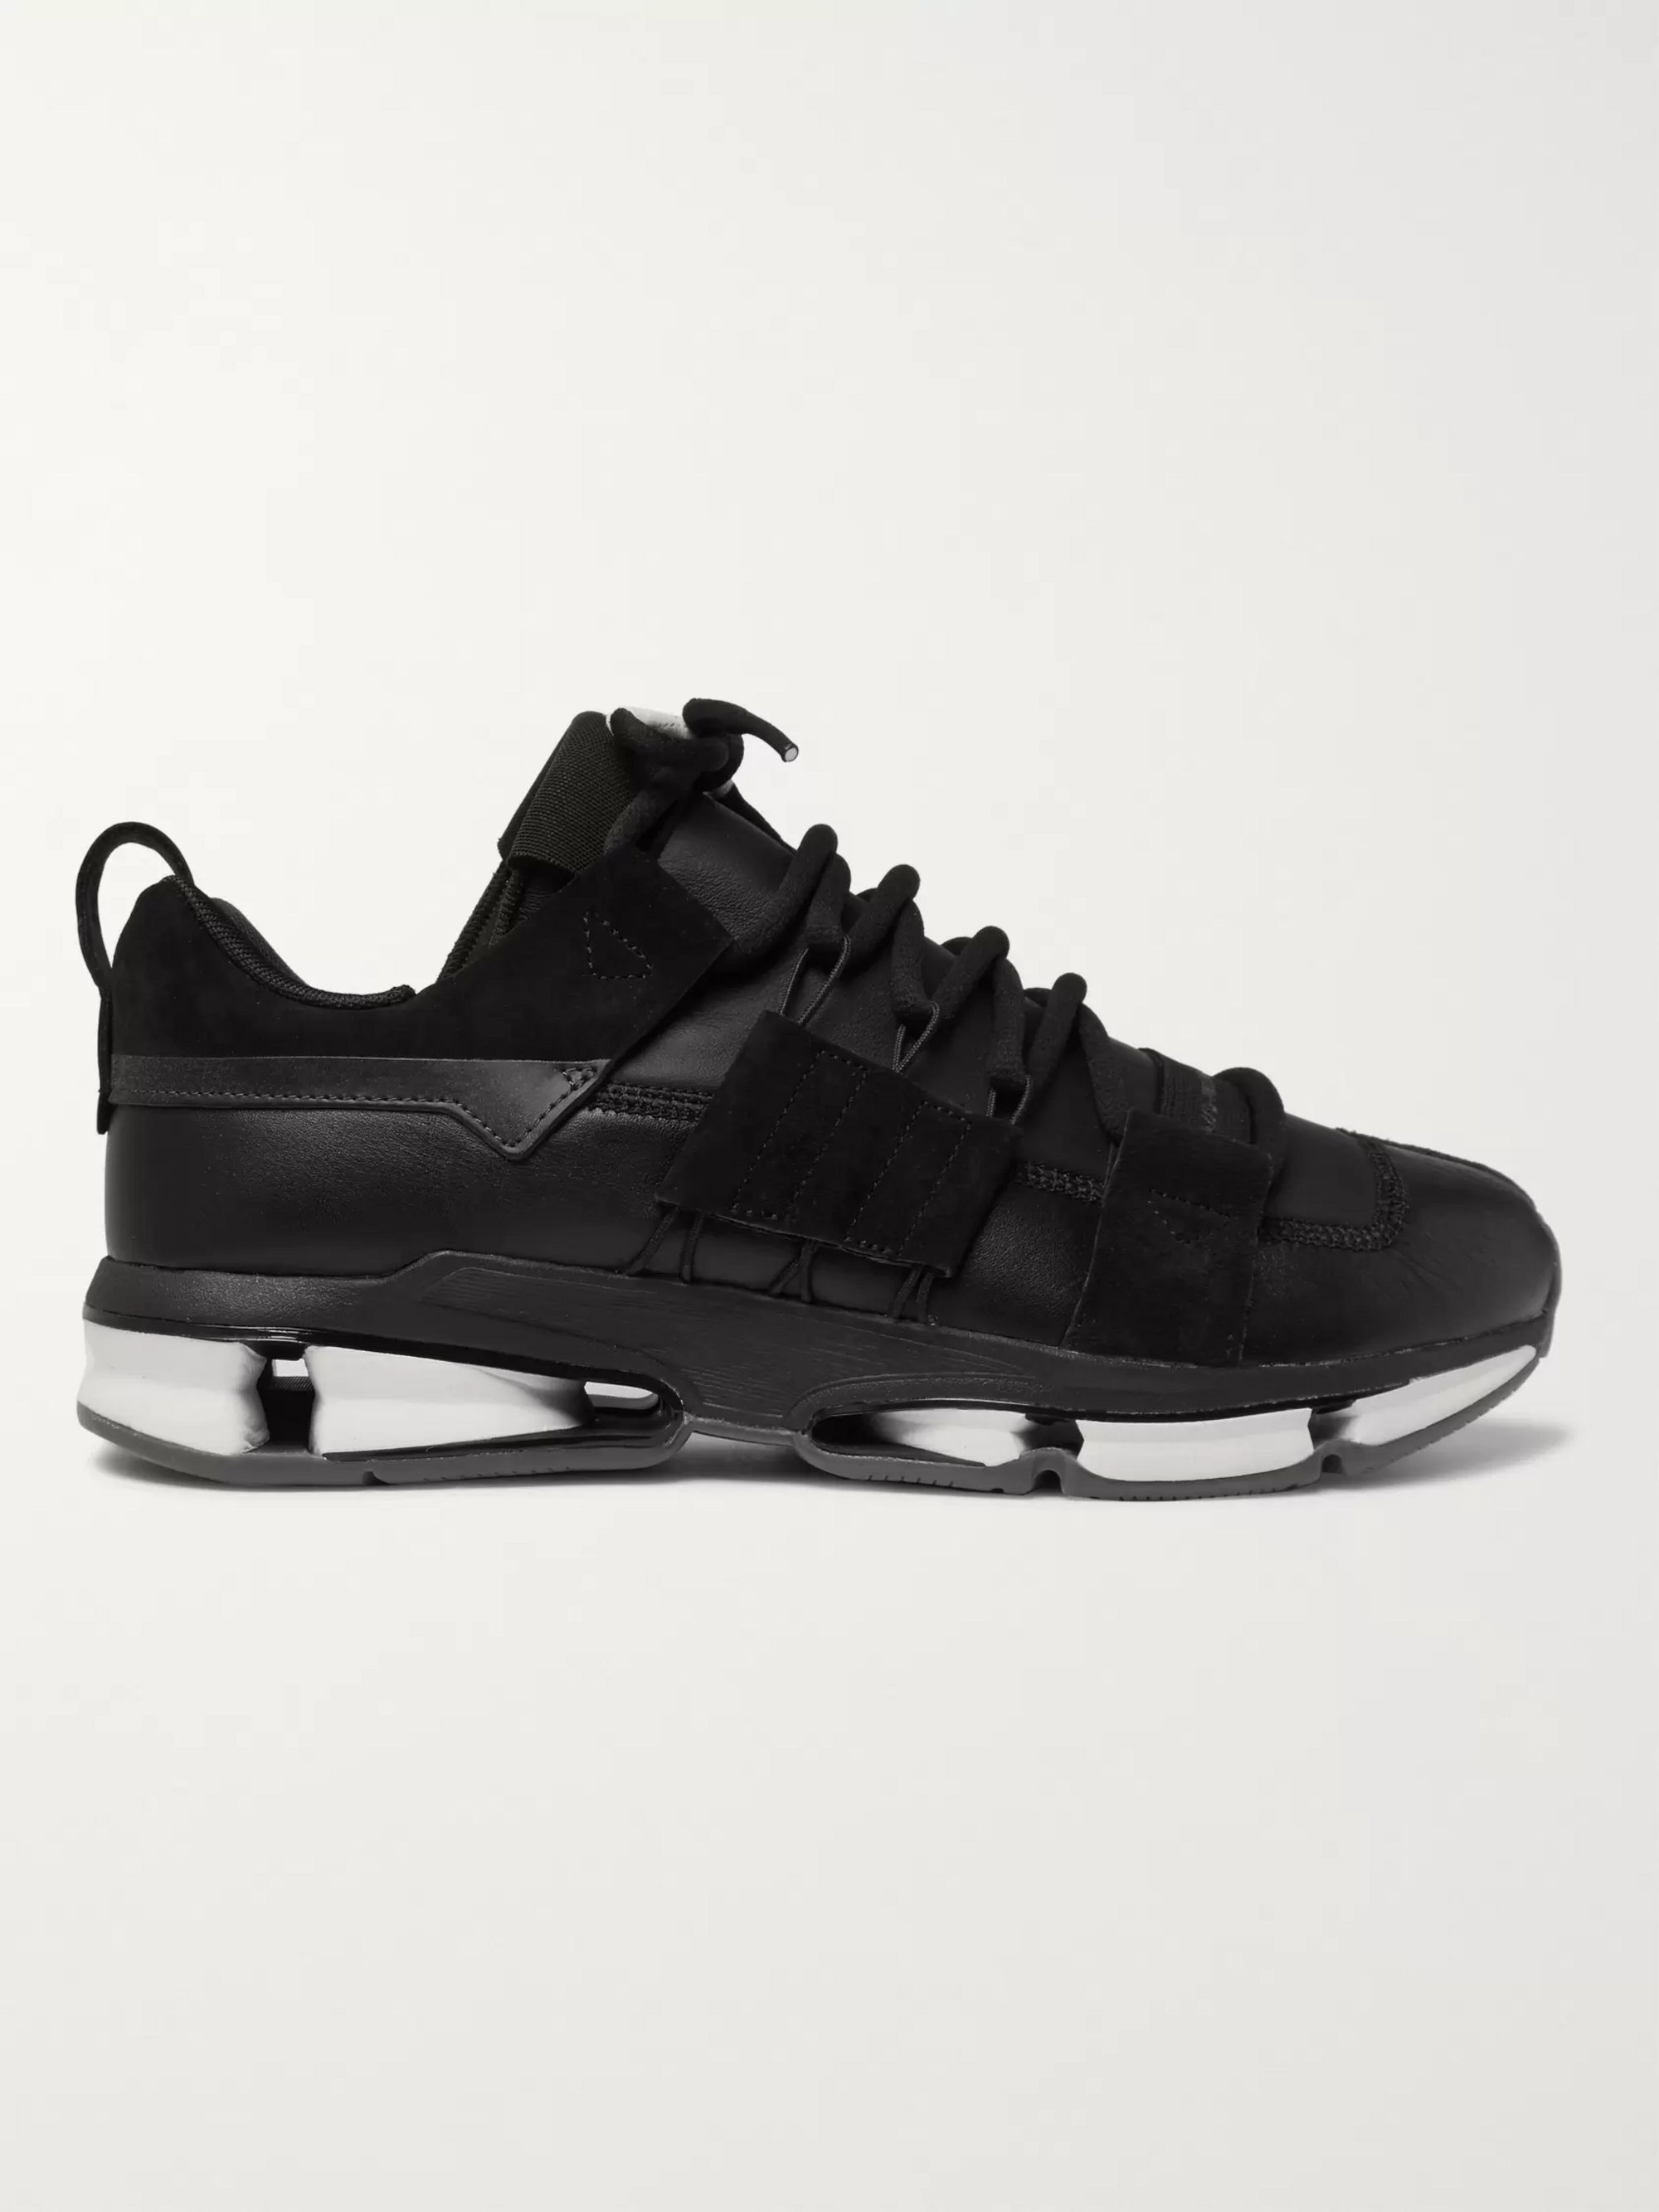 adidas Originals Twinstrike ADV Leather and Suede Sneakers